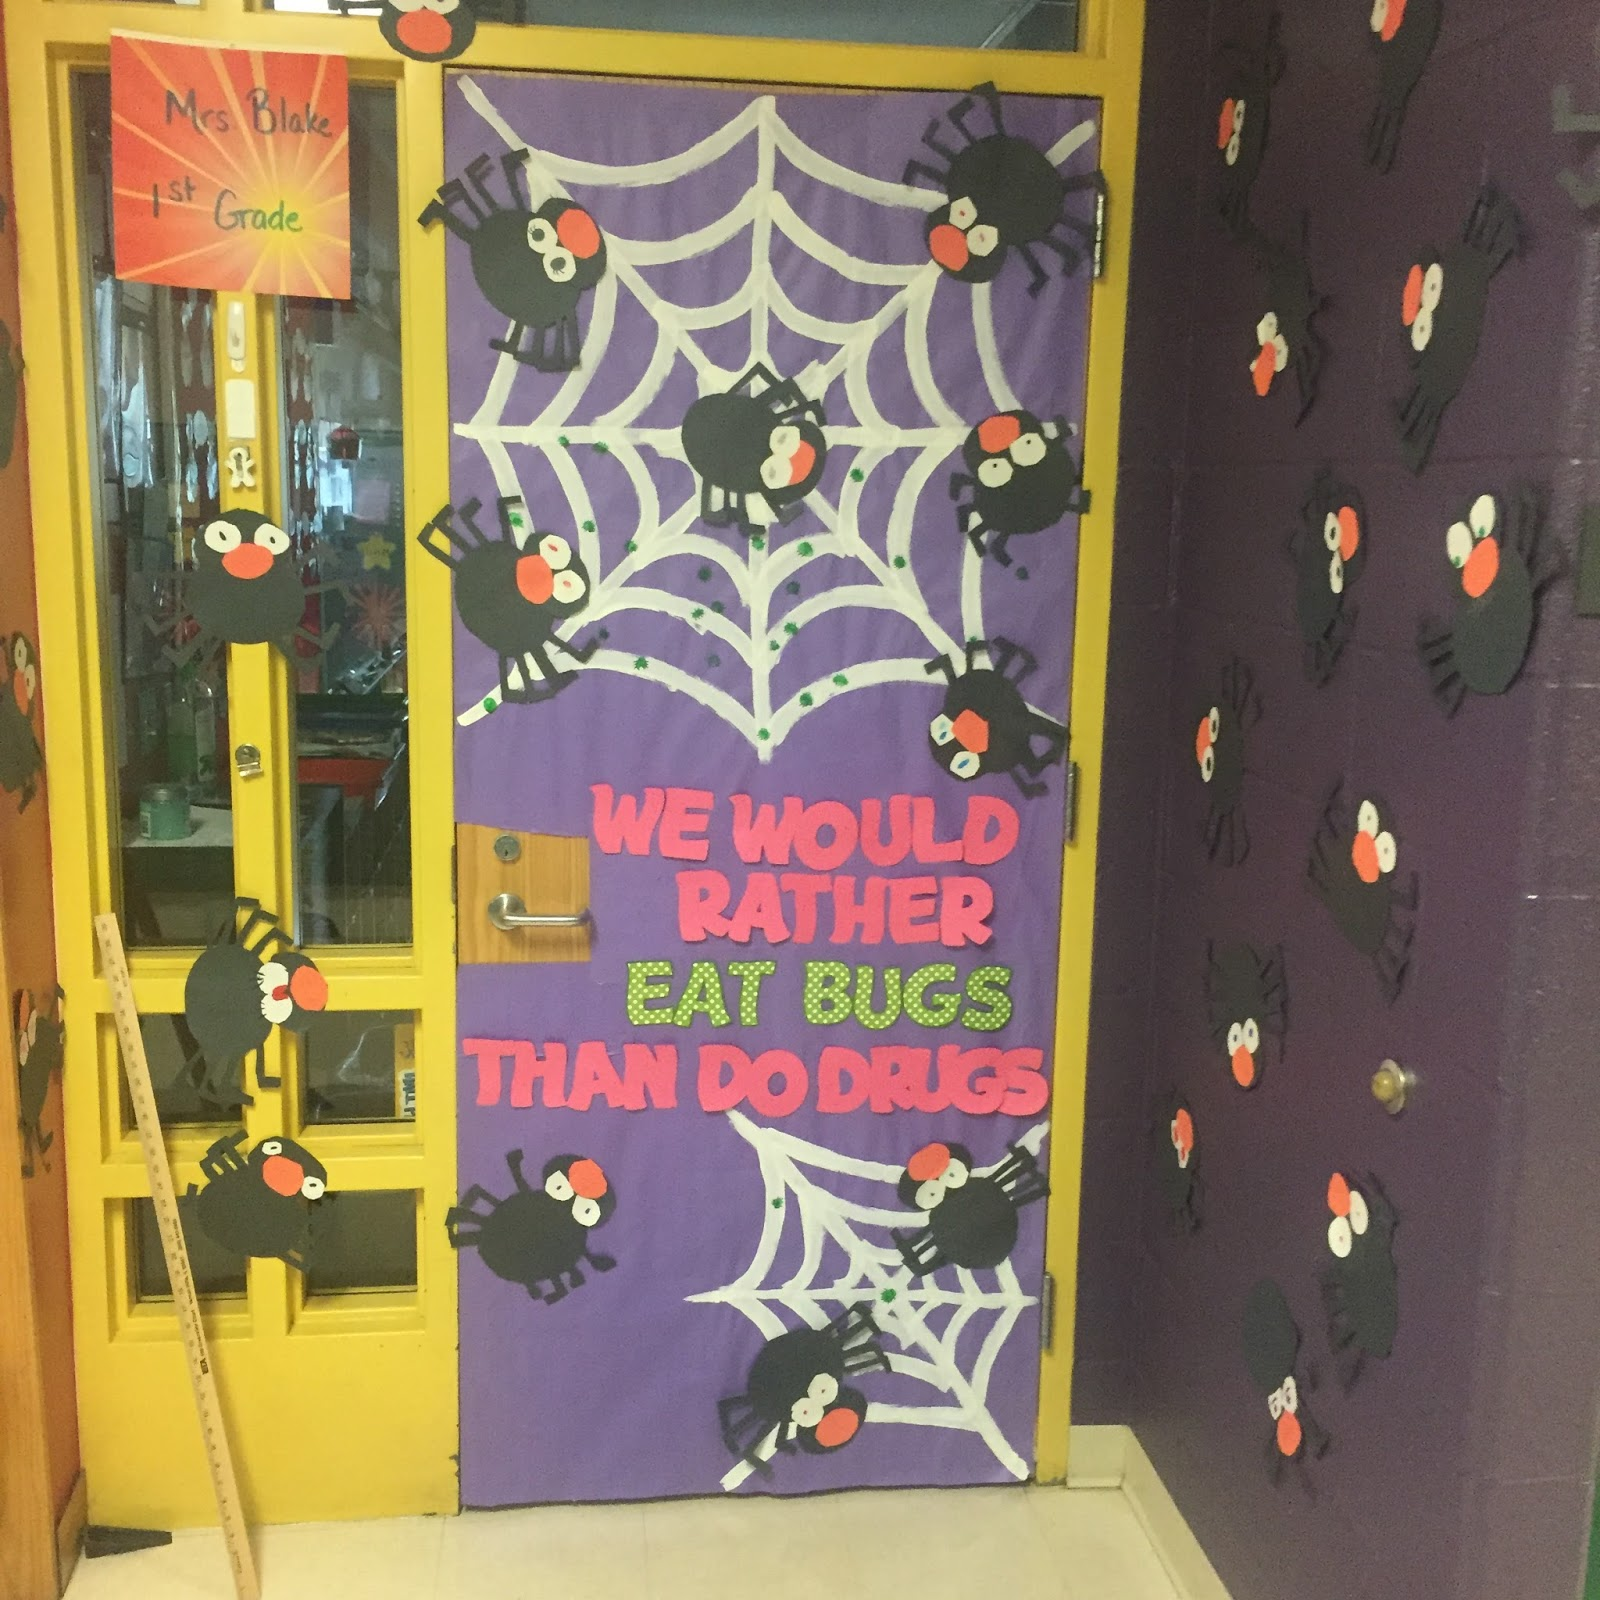 Mrs Blakes Little Tigers Red Ribbon Week Door Decorating Contest